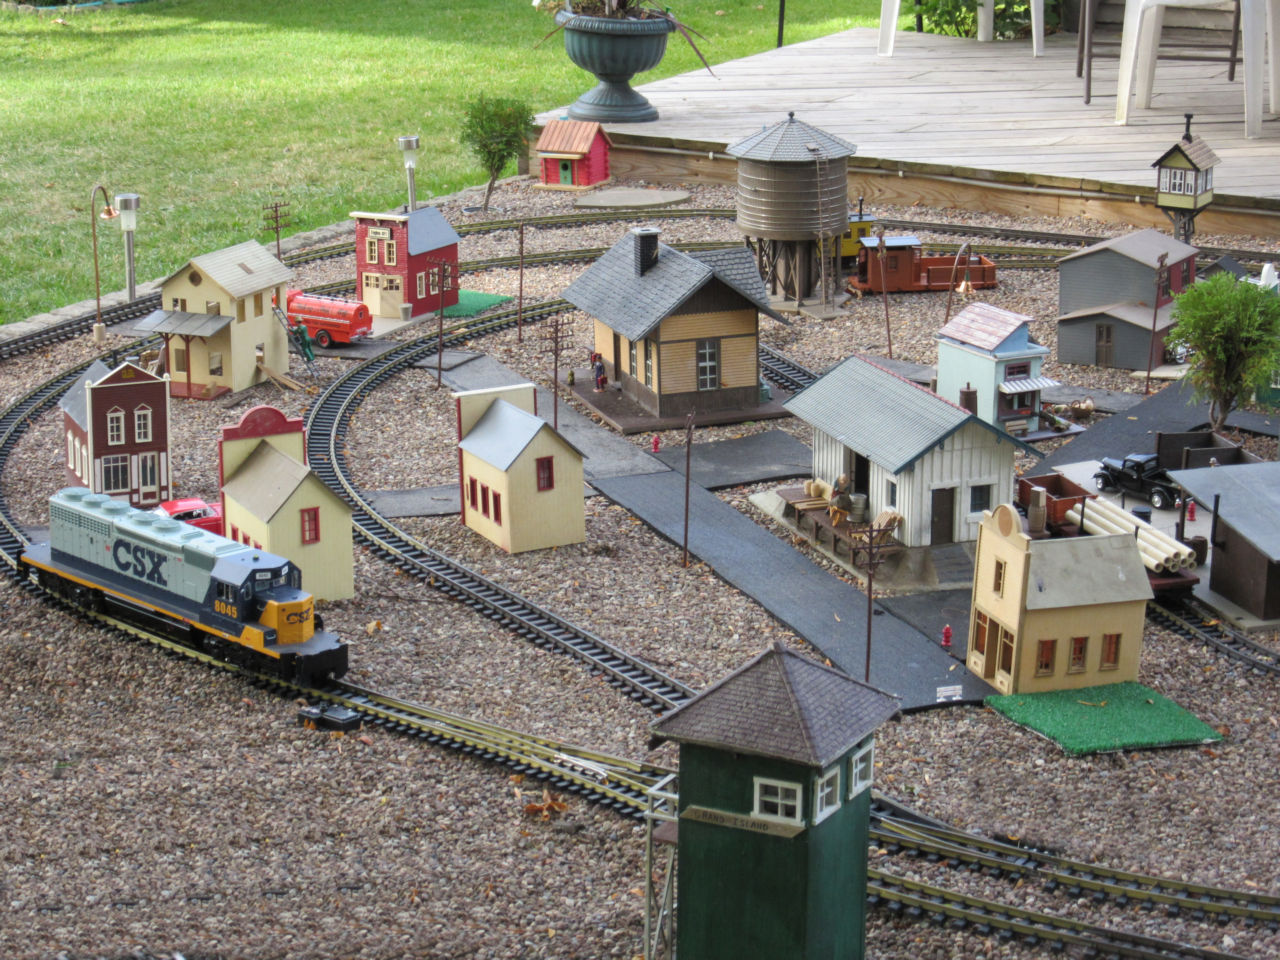 Peaseful Acres Railroad GRR Layout (11).JPG